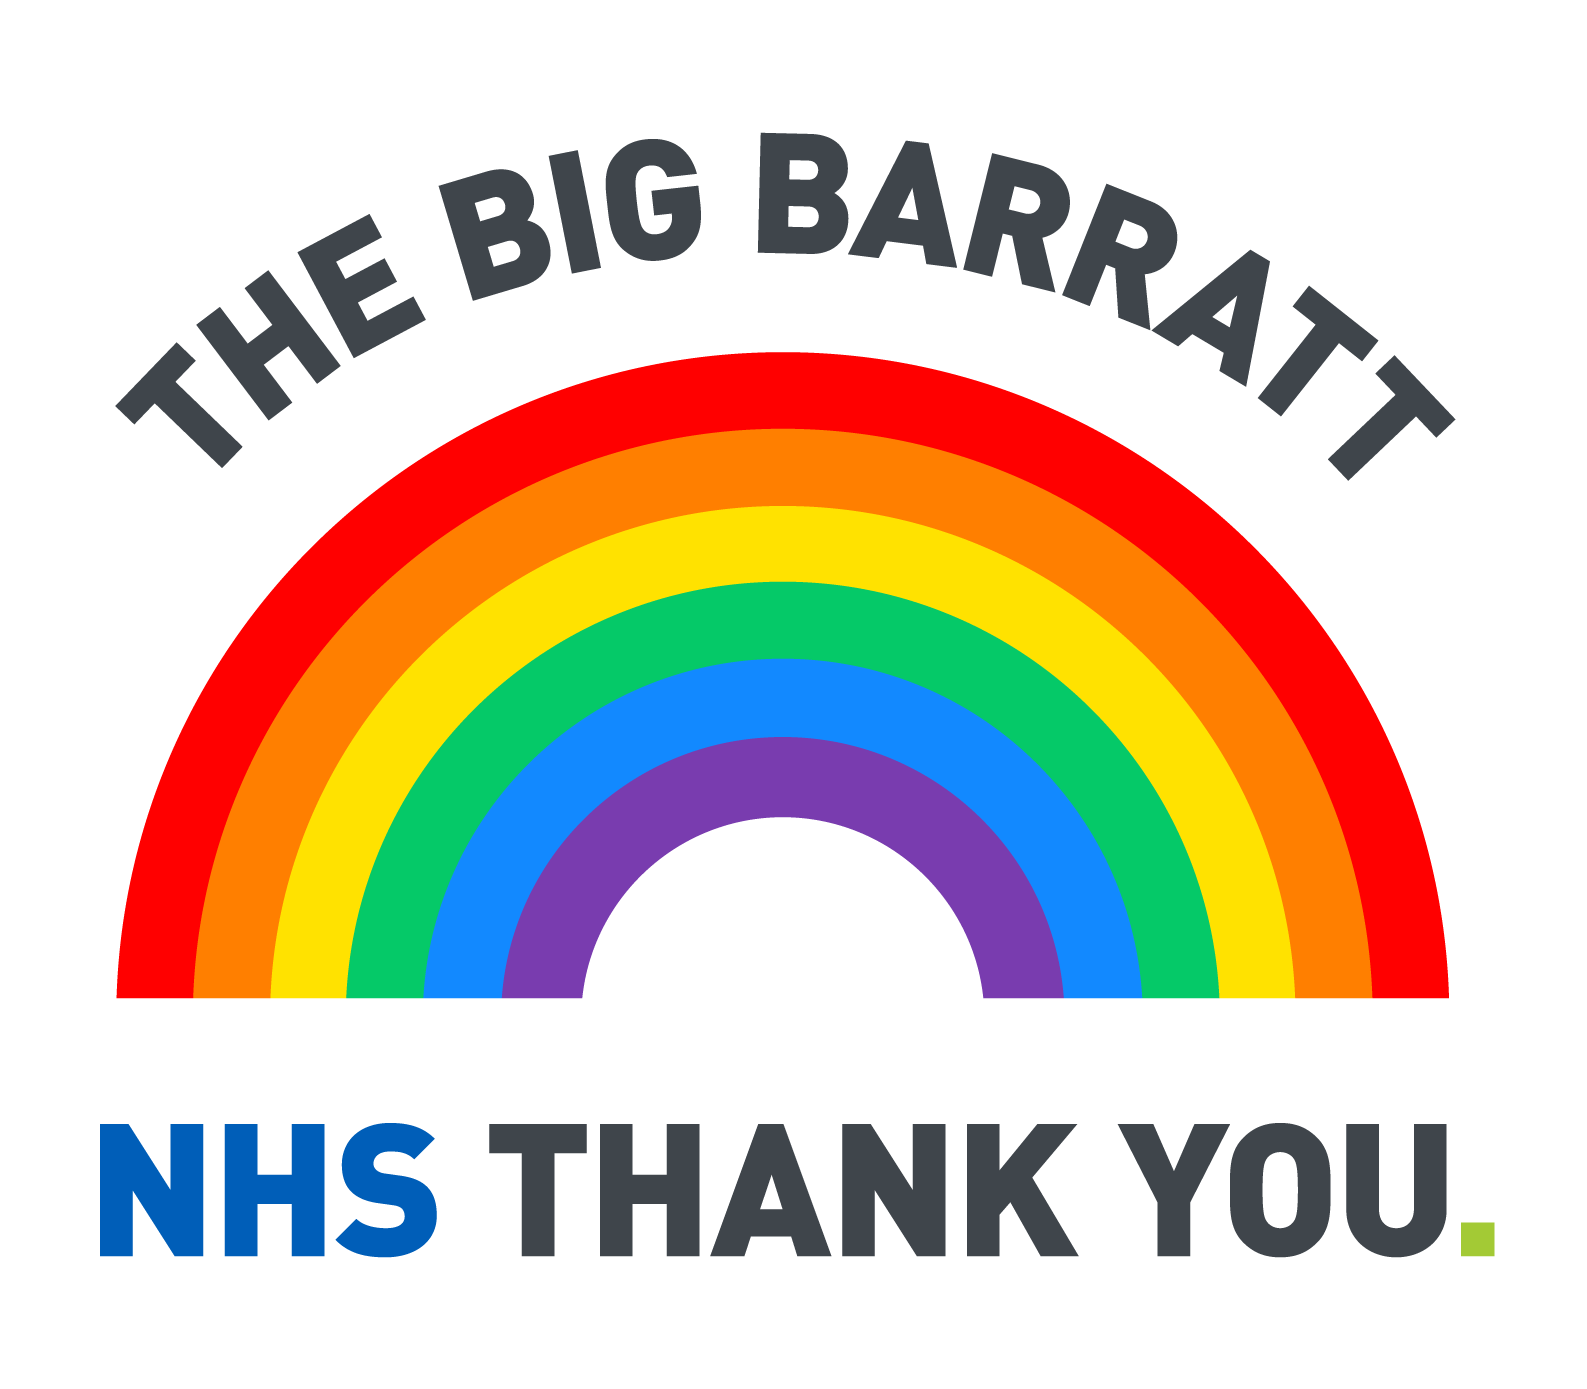 The Big Barratt NHS Thank You